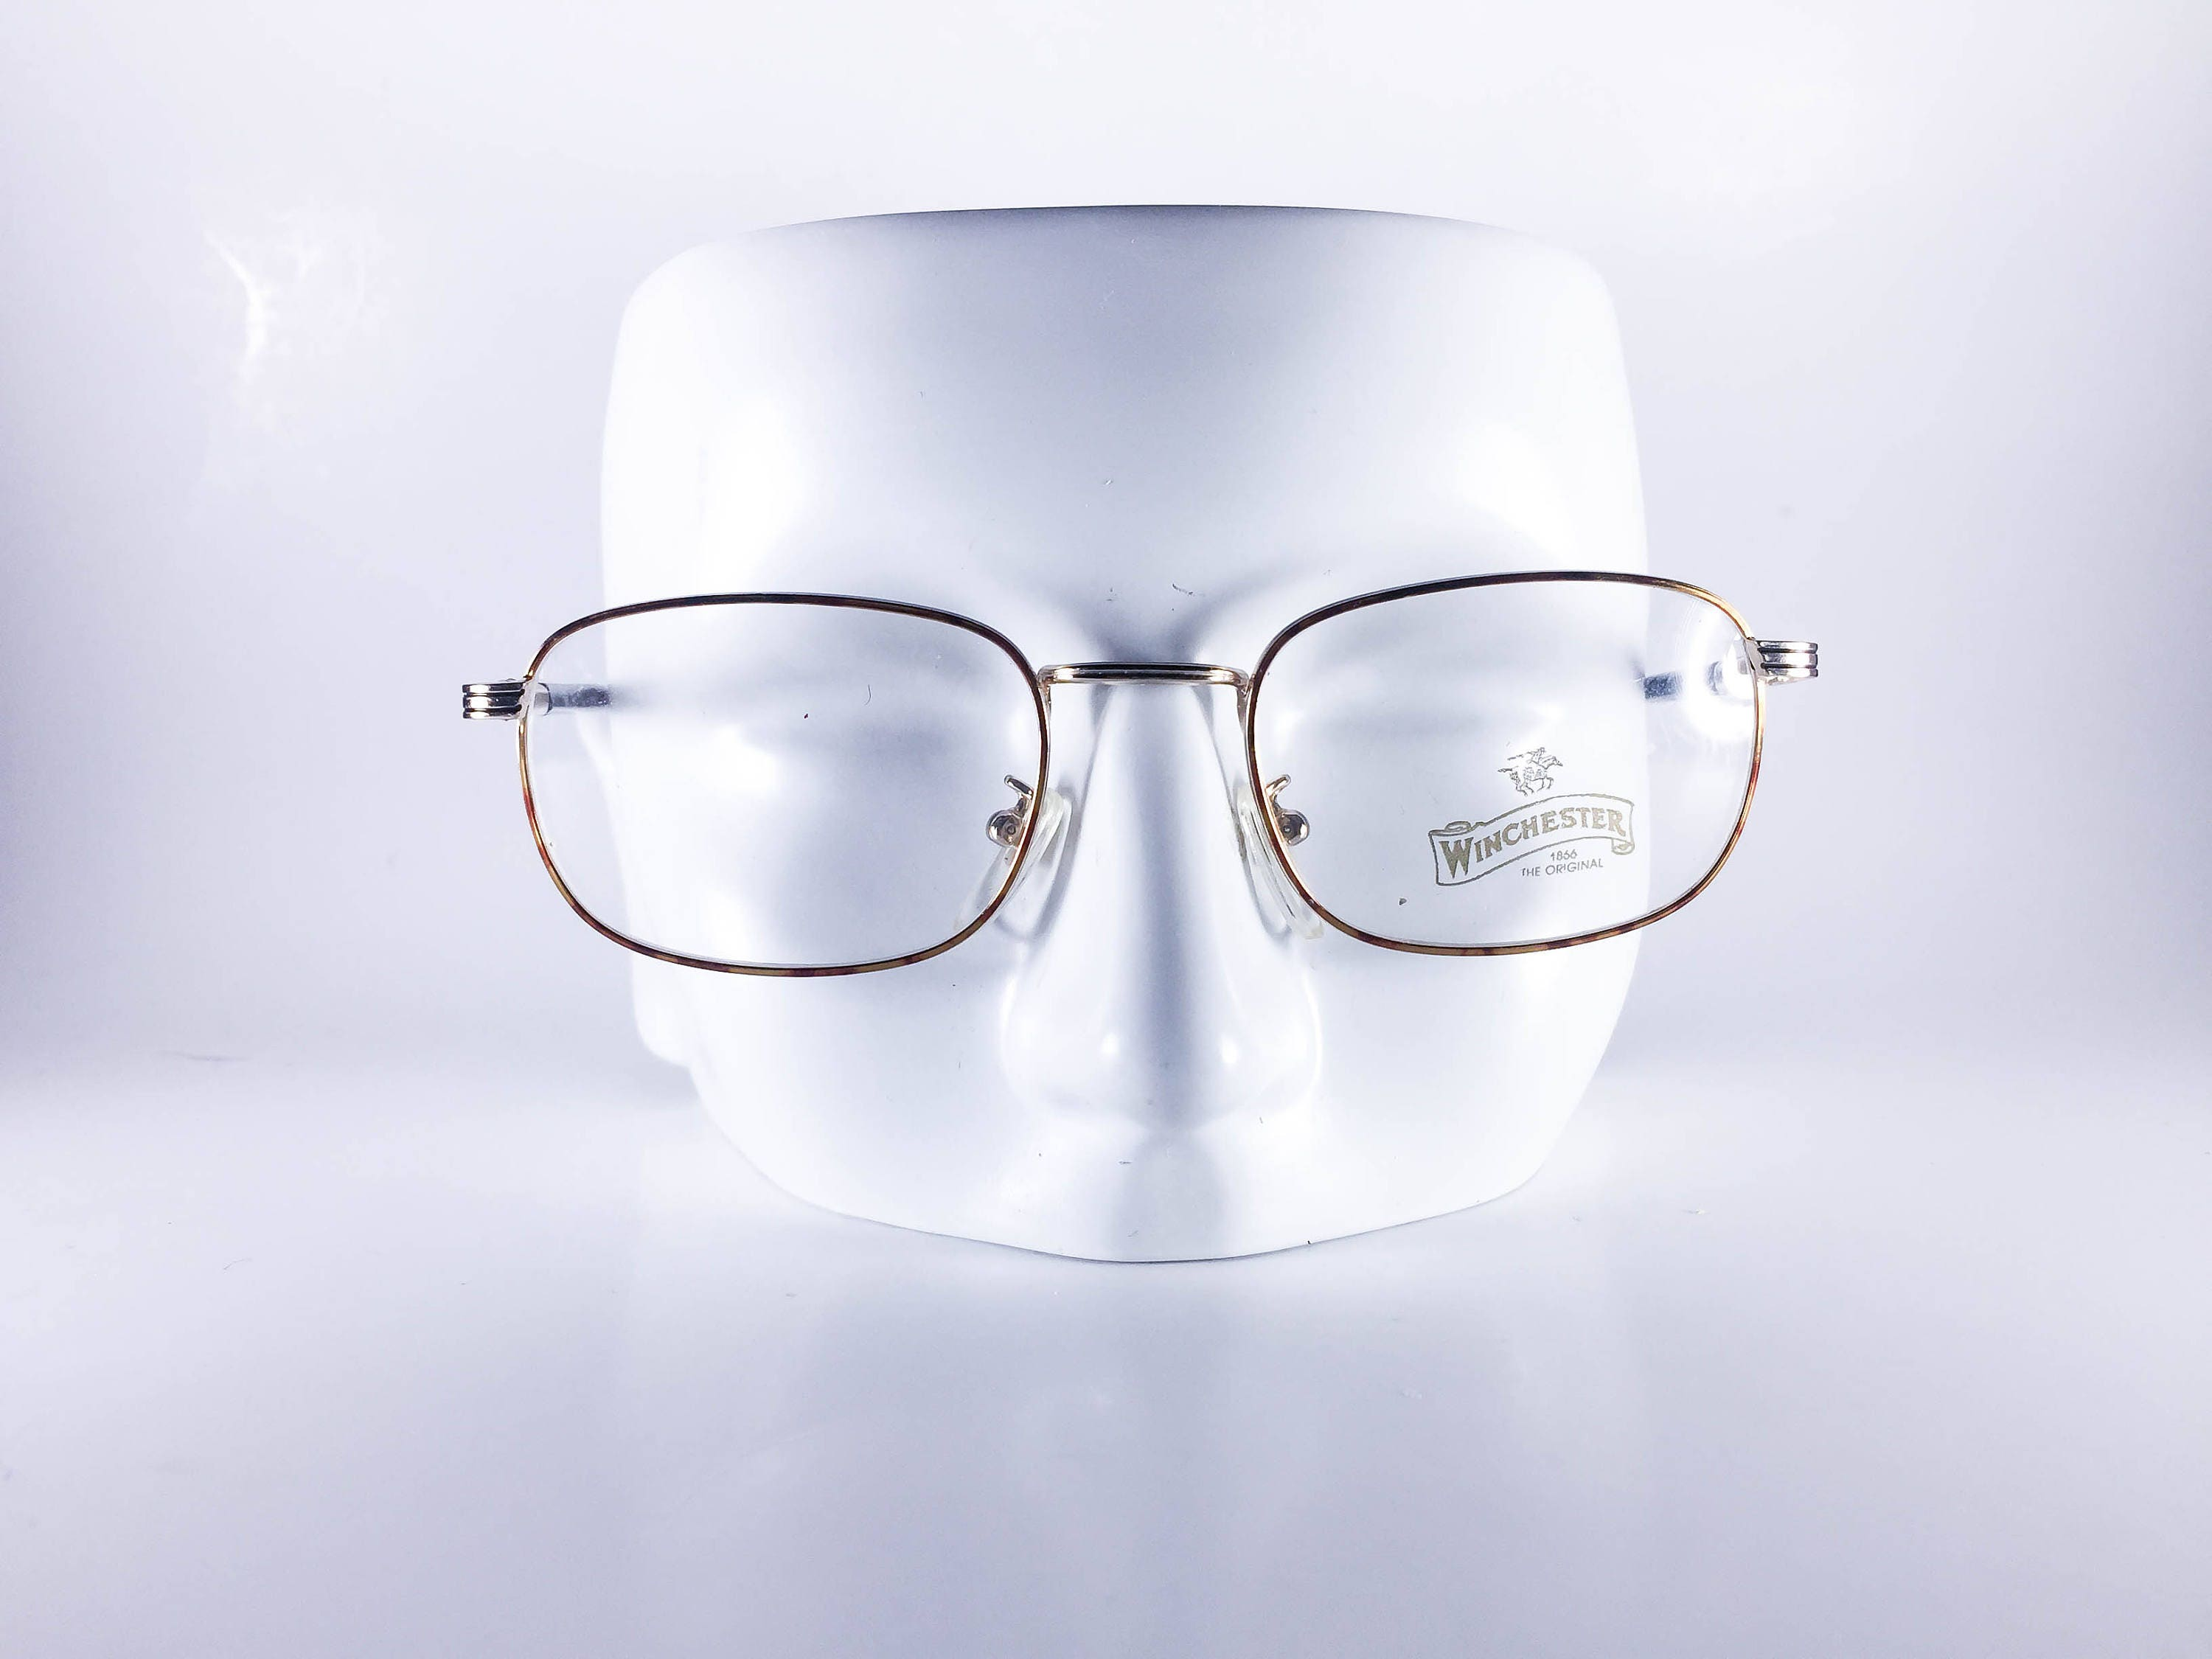 e6aa6586fe0 WINCHESTER Vintage Eyeglasses by Magic Line Made in Italy Guide 50-19 448 L